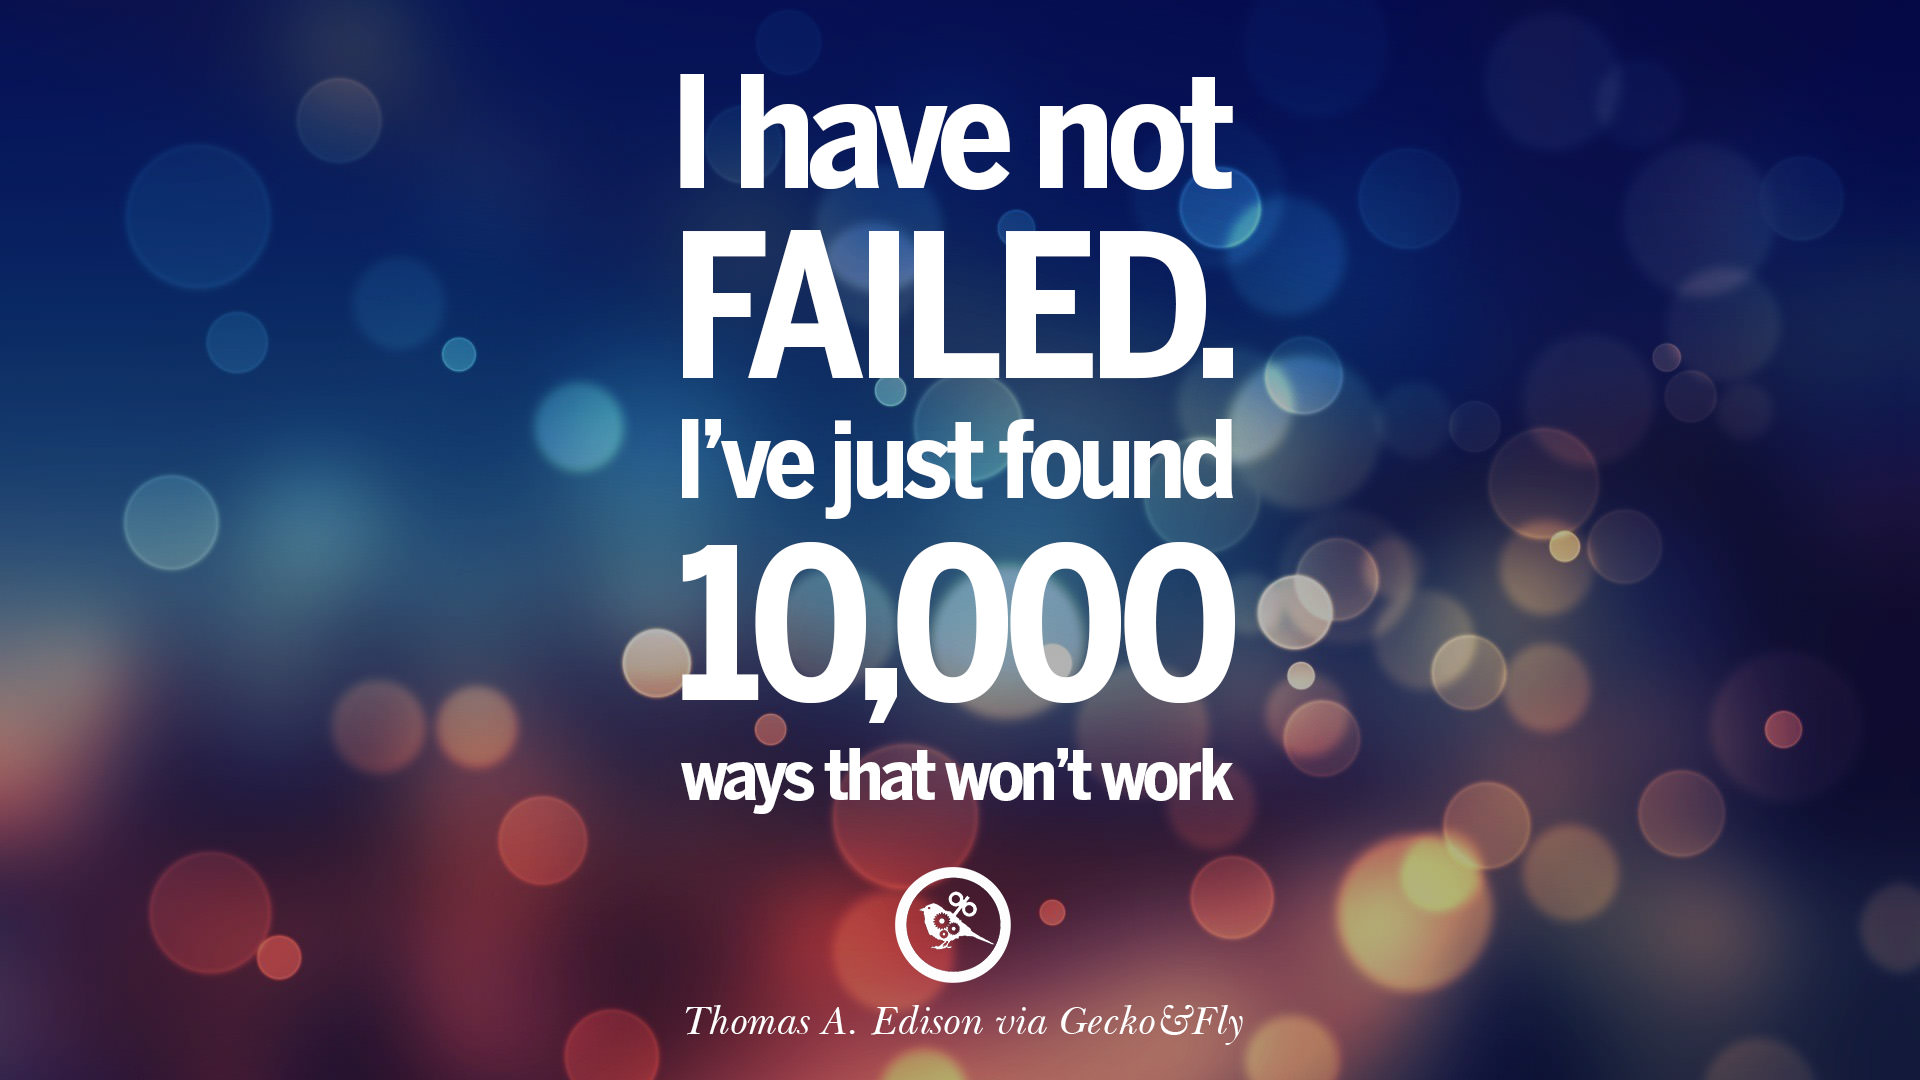 Wise Failure Quotes Wallpaper 10 Famous Motivational Quotes About Success In Life That